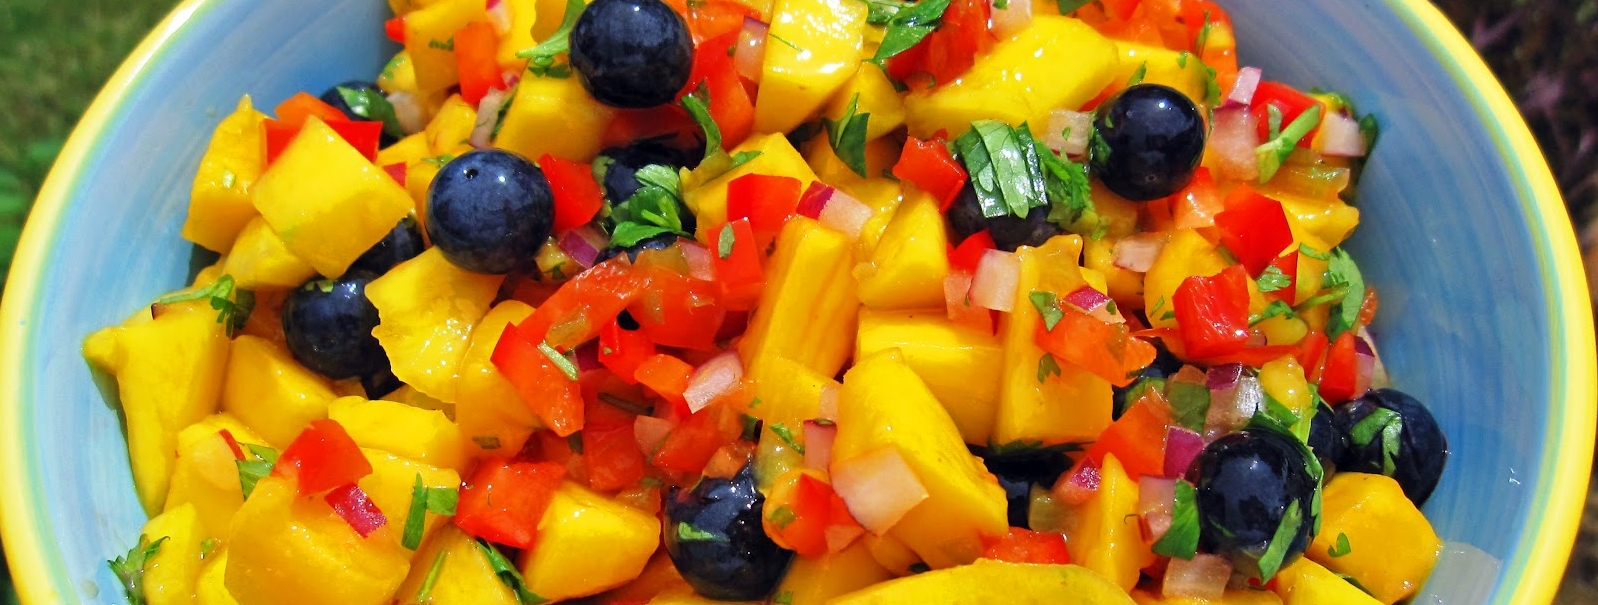 Mango Blueberry Salsa 003.jpg